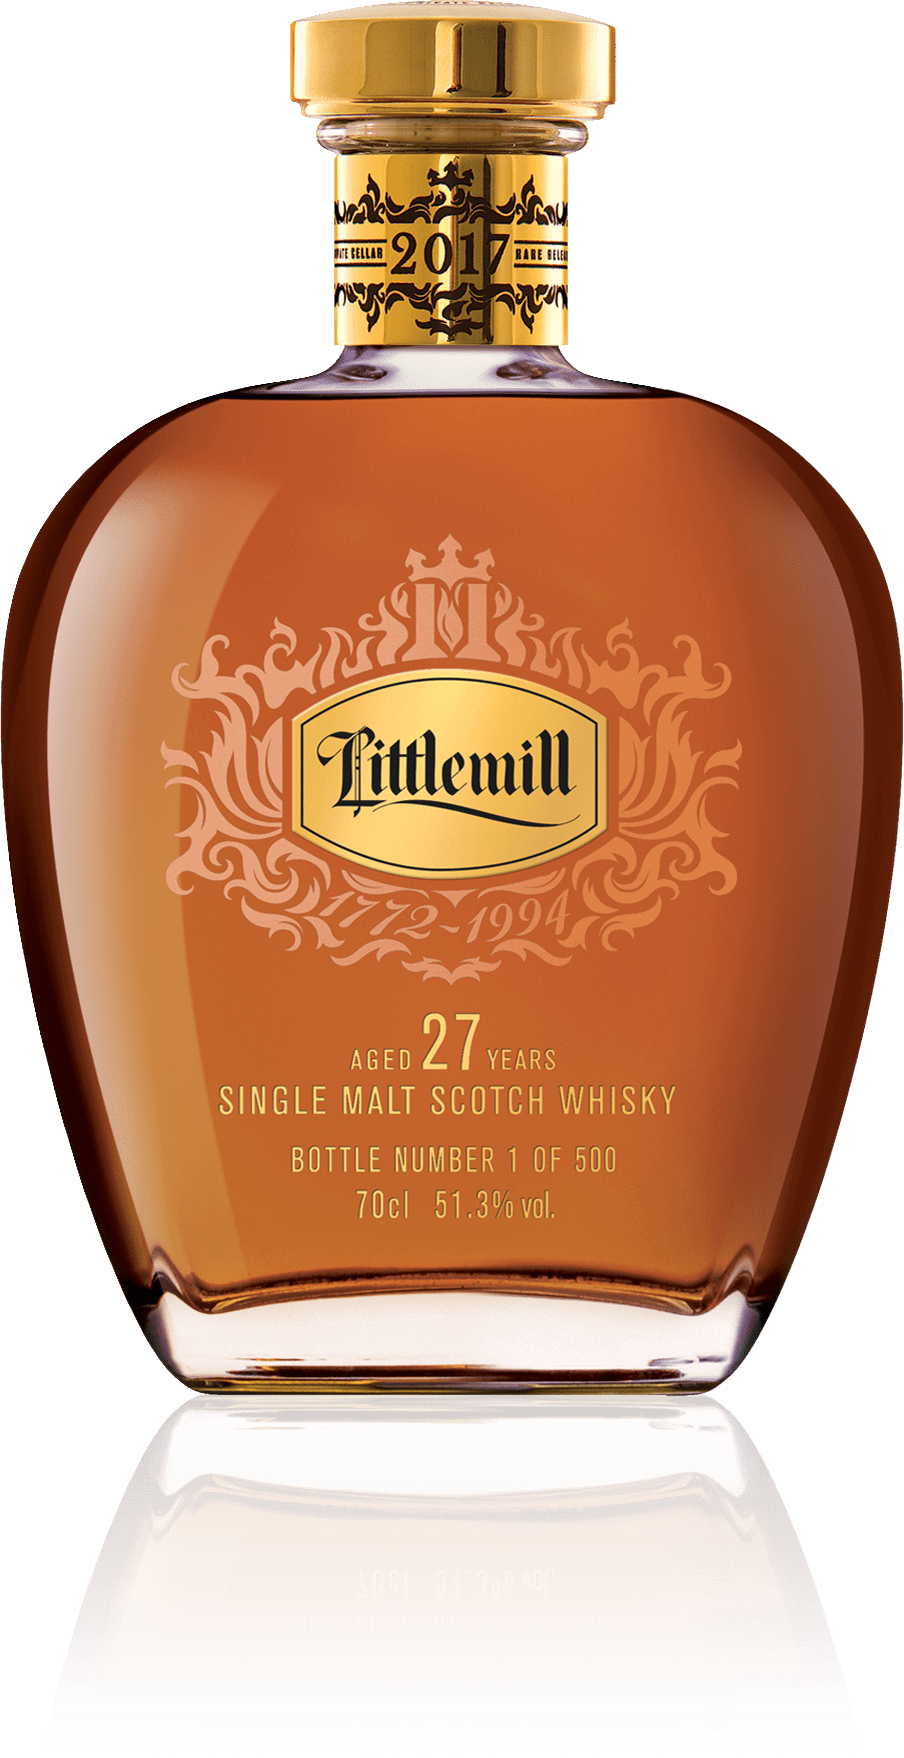 LITTLEMILL 2017 AGED 27 YEARS